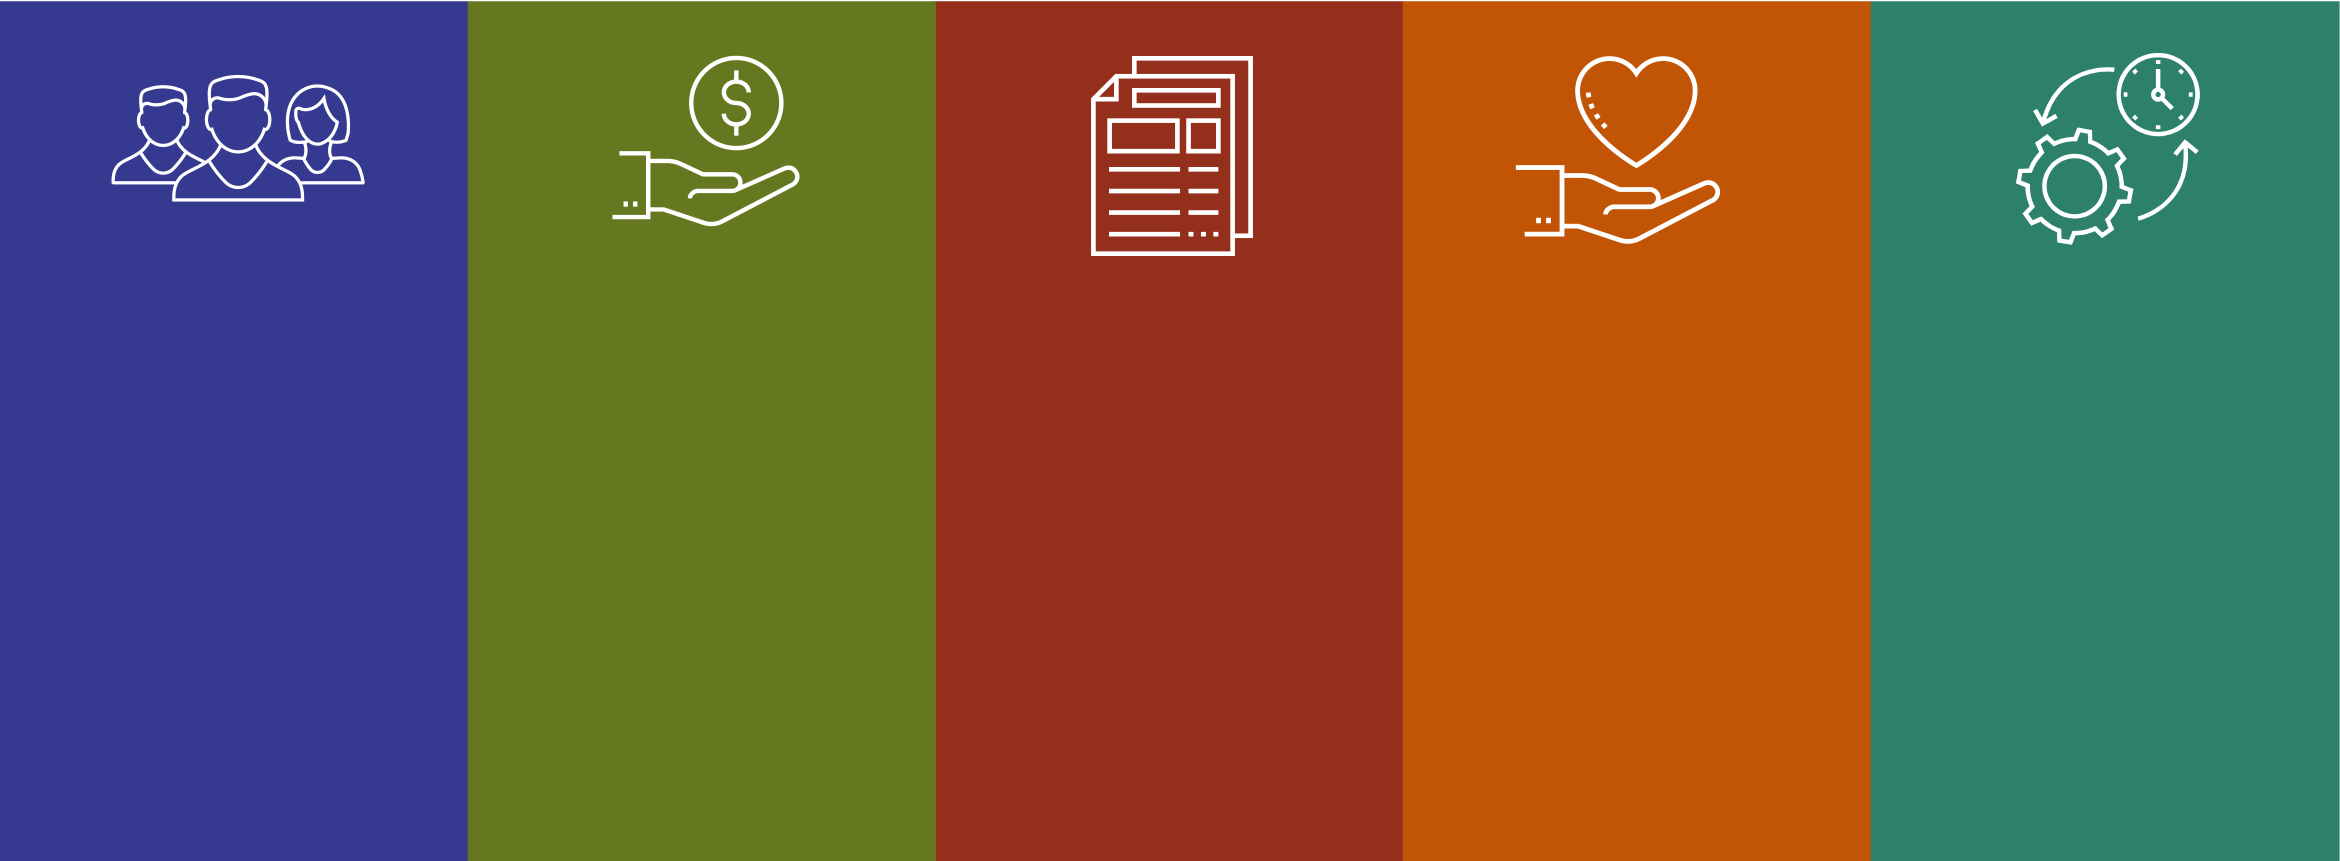 pitt worx icons and colors for system modules